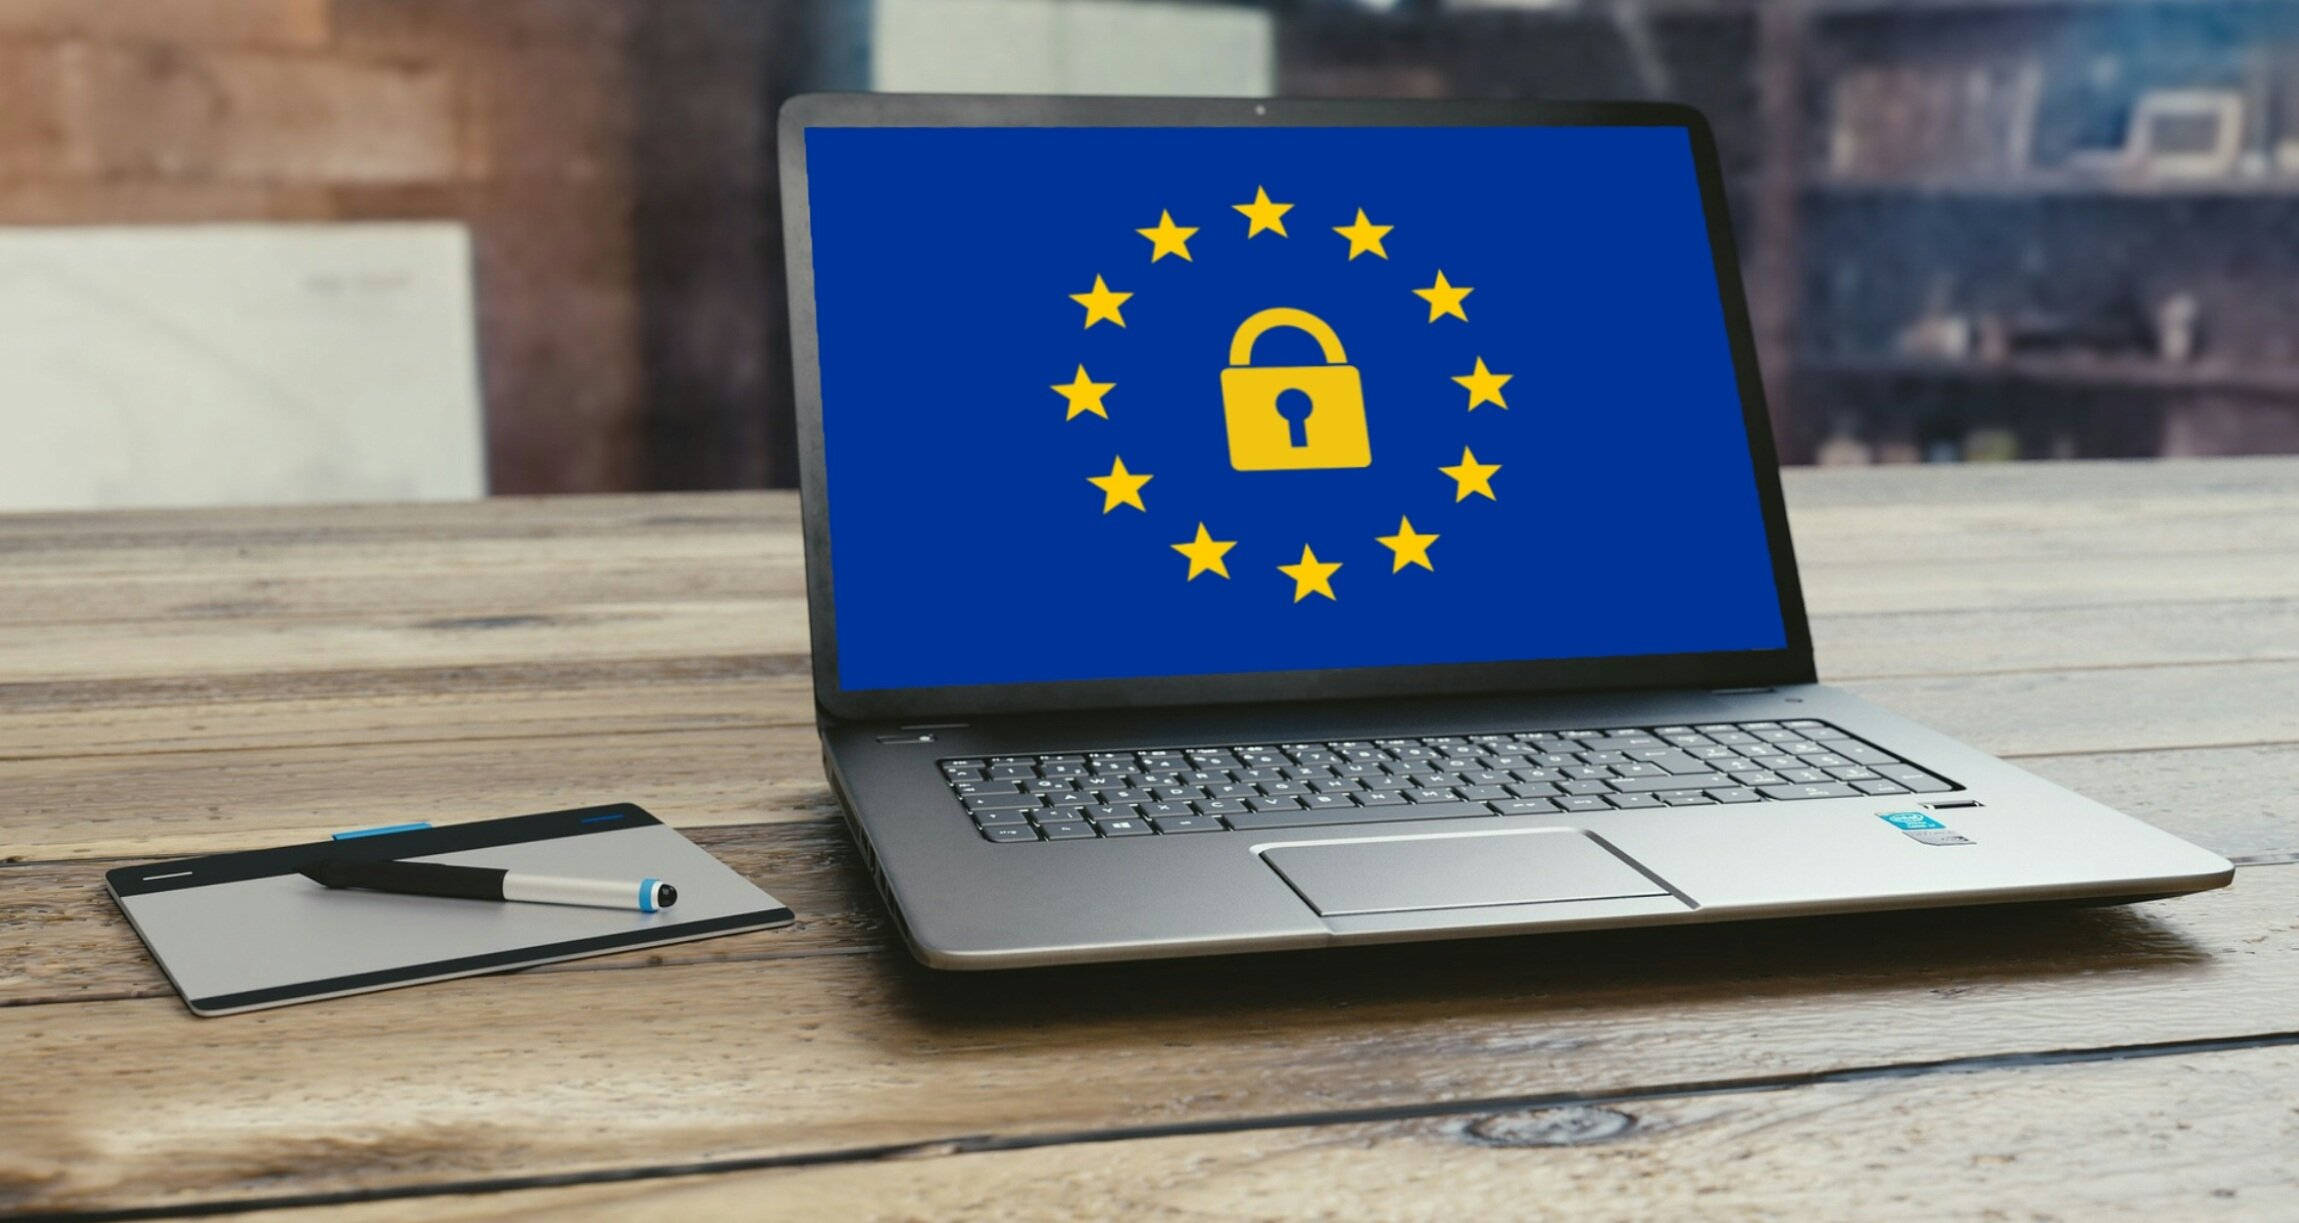 European Union GDPR new regulation protecting the personal data of internet users